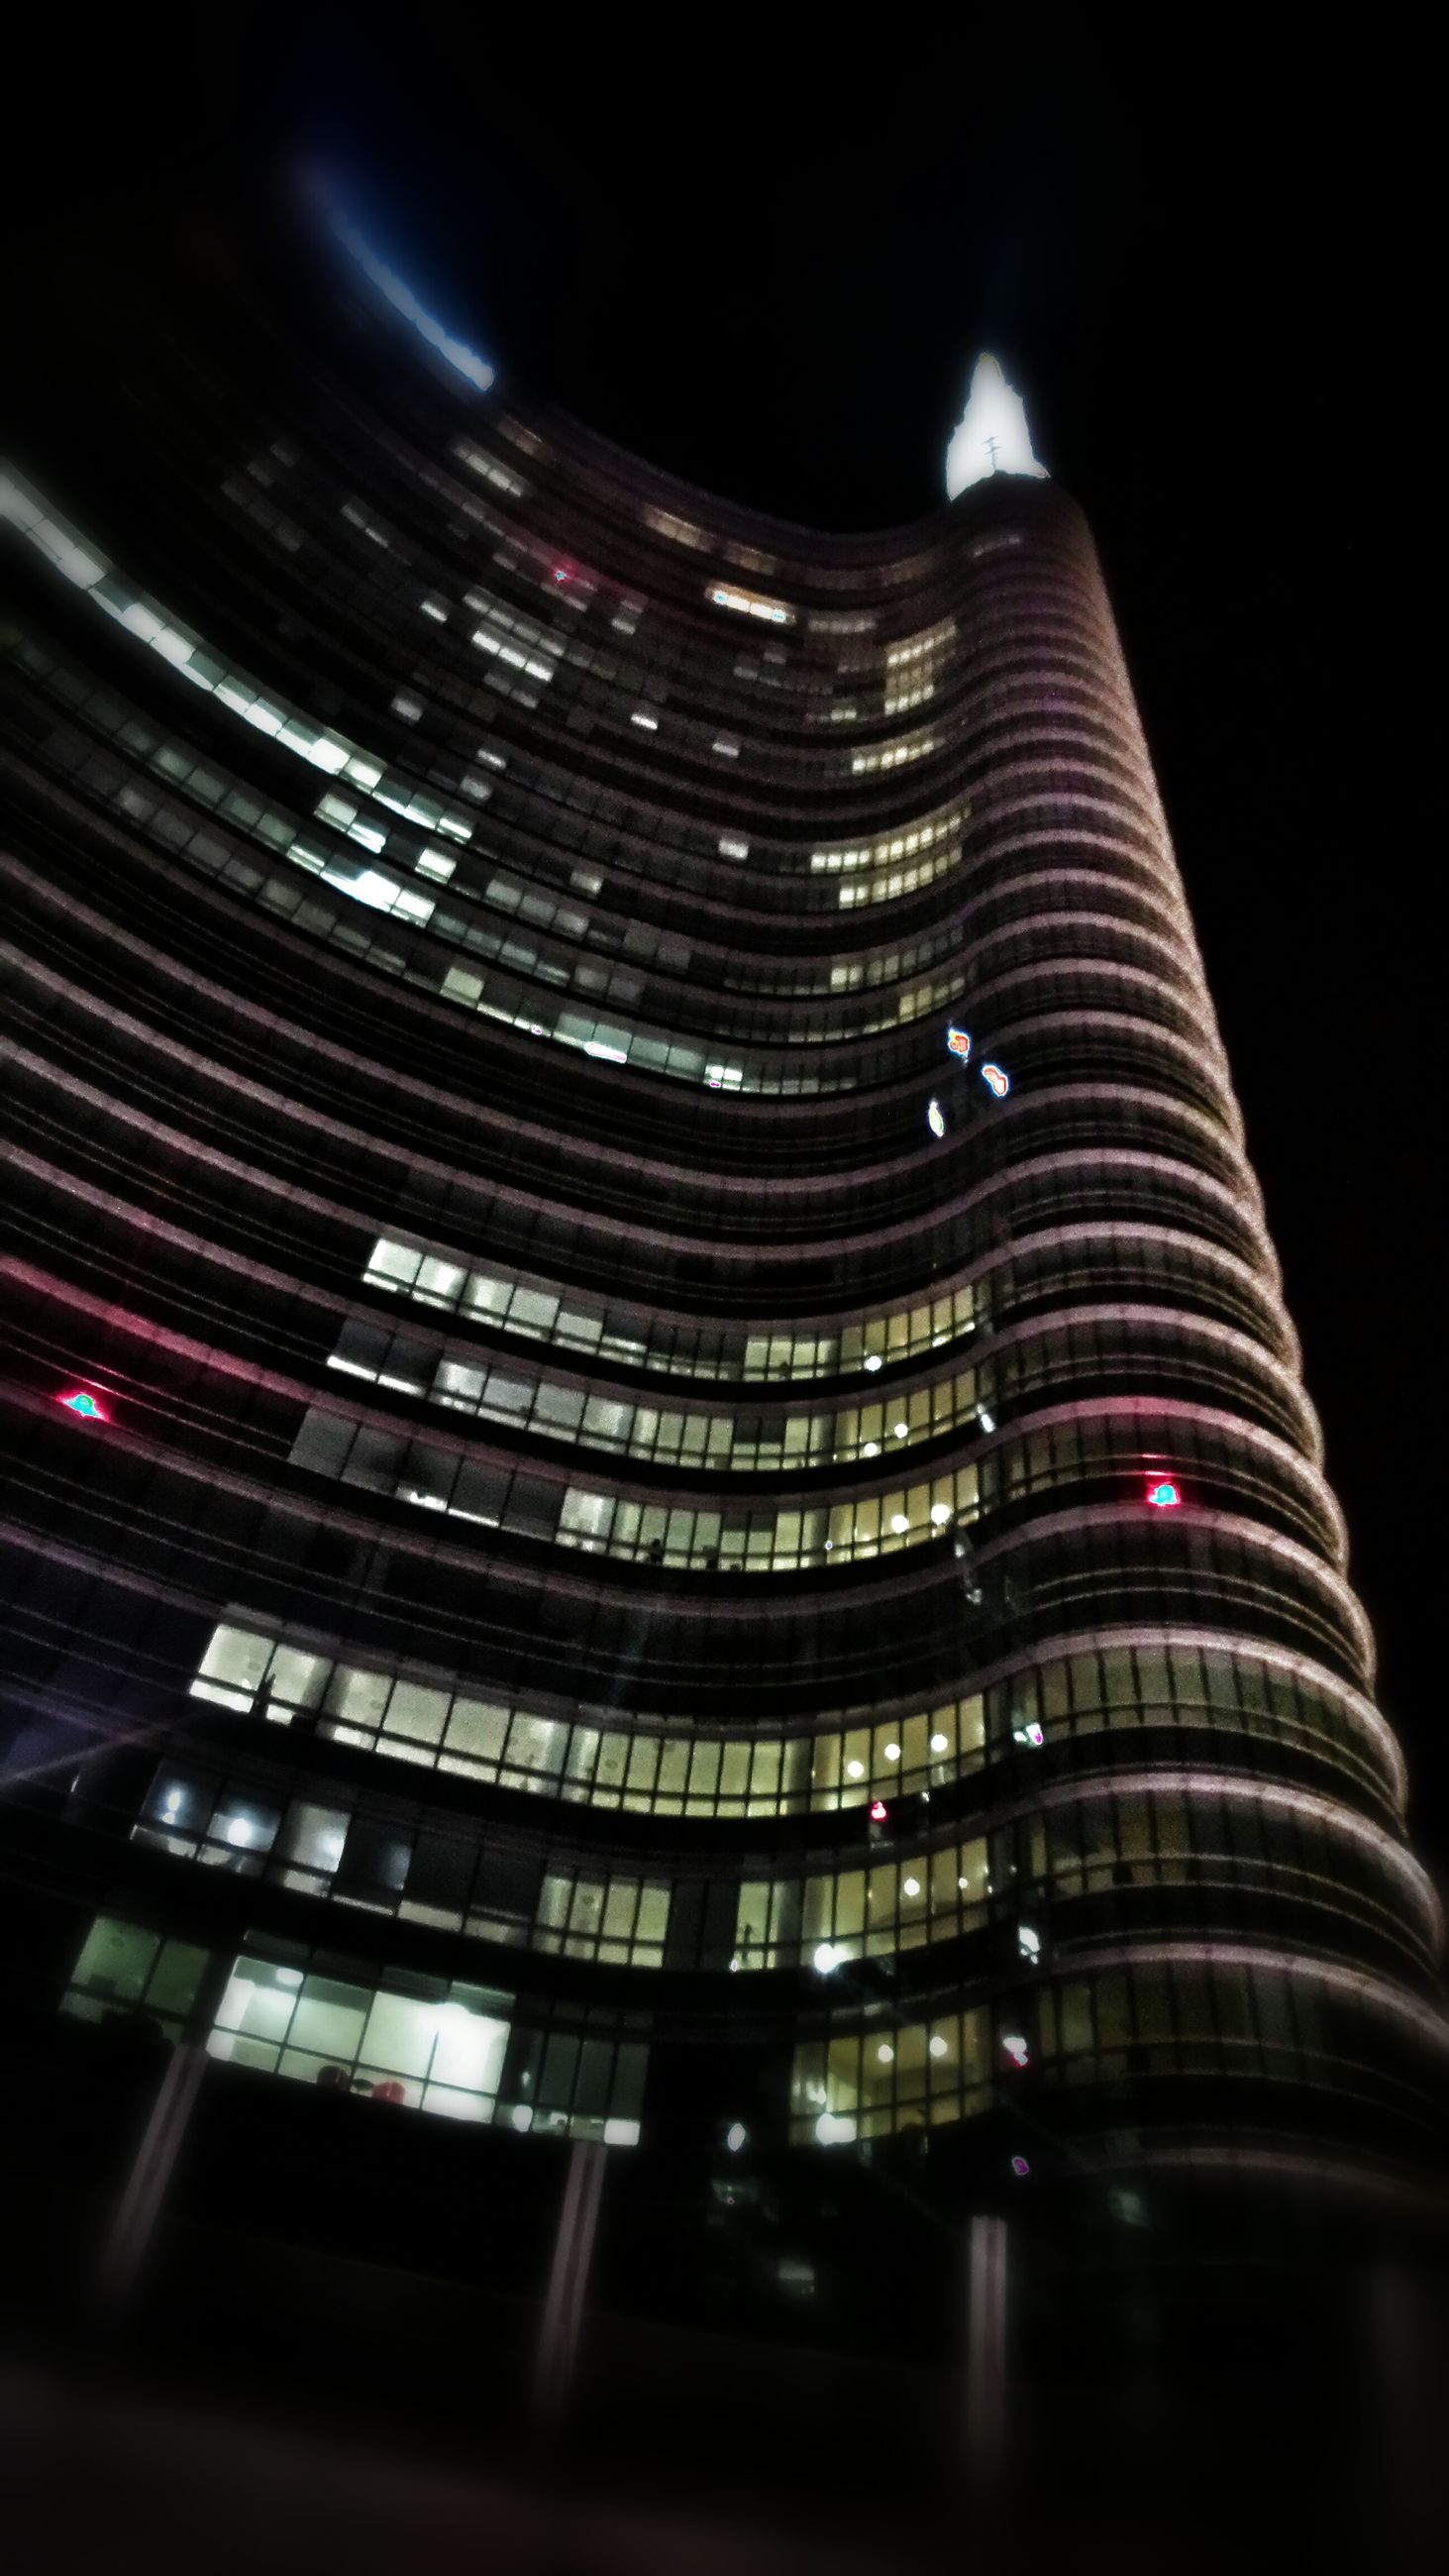 architecture, building exterior, night, illuminated, built structure, skyscraper, city, modern, low angle view, office building, tall - high, tower, building, capital cities, city life, no people, travel destinations, financial district, tall, outdoors